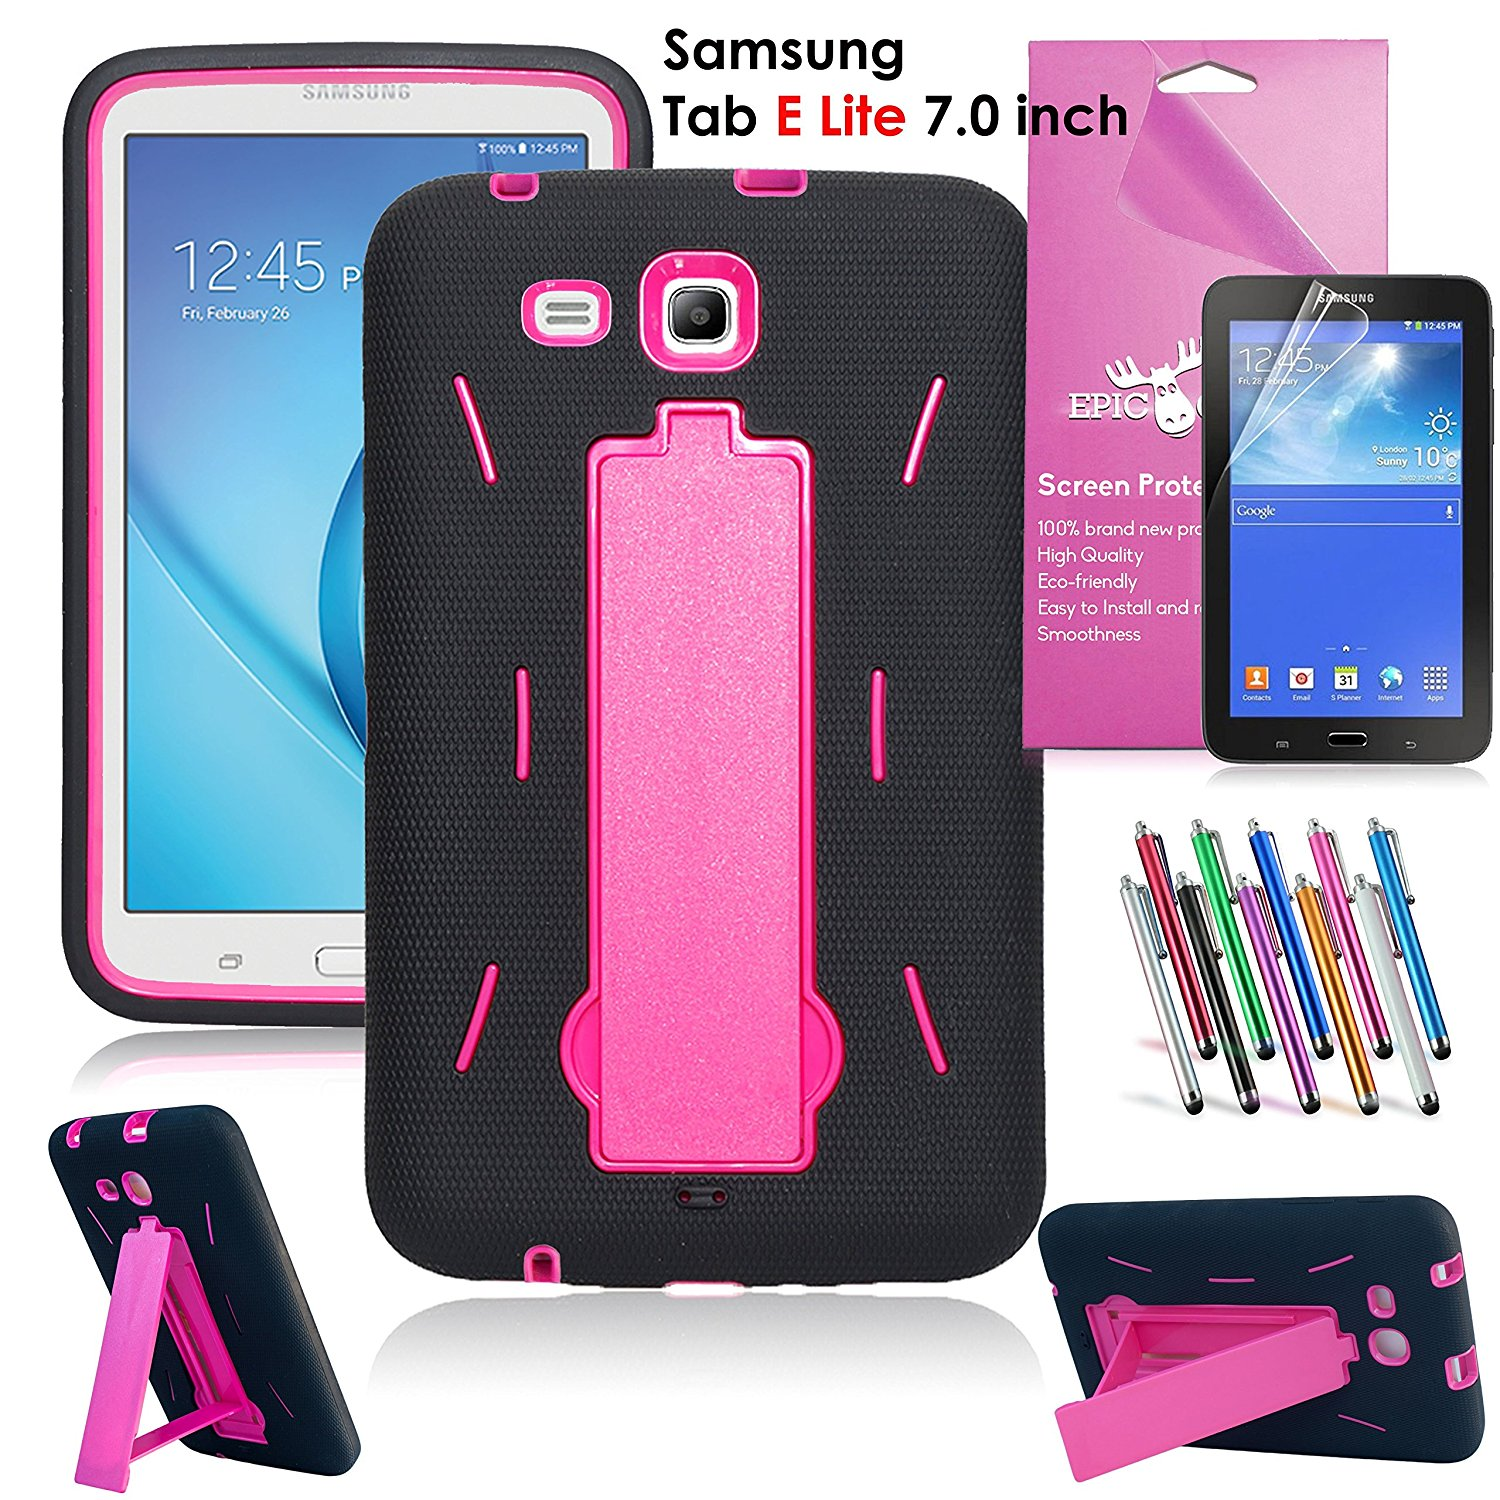 Samsung Galaxy Tab E Lite 7.0 Case, EpicGadget Heavy Duty Rugged Impact Hybrid Case with Build In Kickstand Protection Cover For Galaxy Tab E Lite 7 Inch Tablet T113 + Screen Film + Pen (Black/Pink)